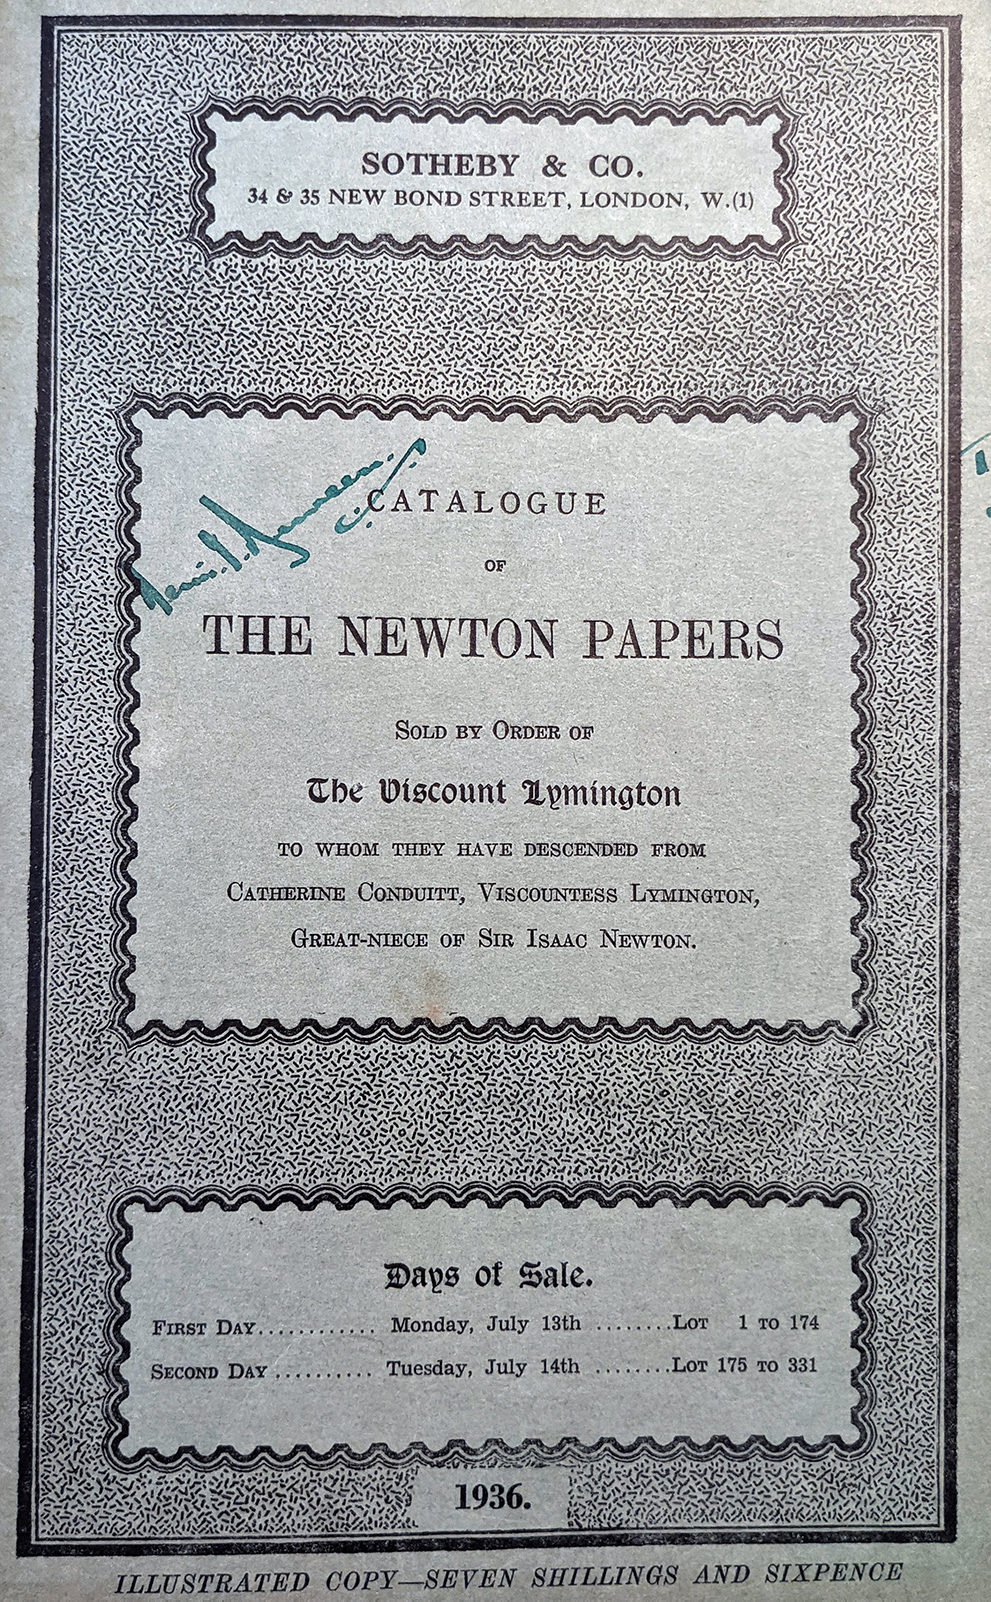 photo of an old catalog cover